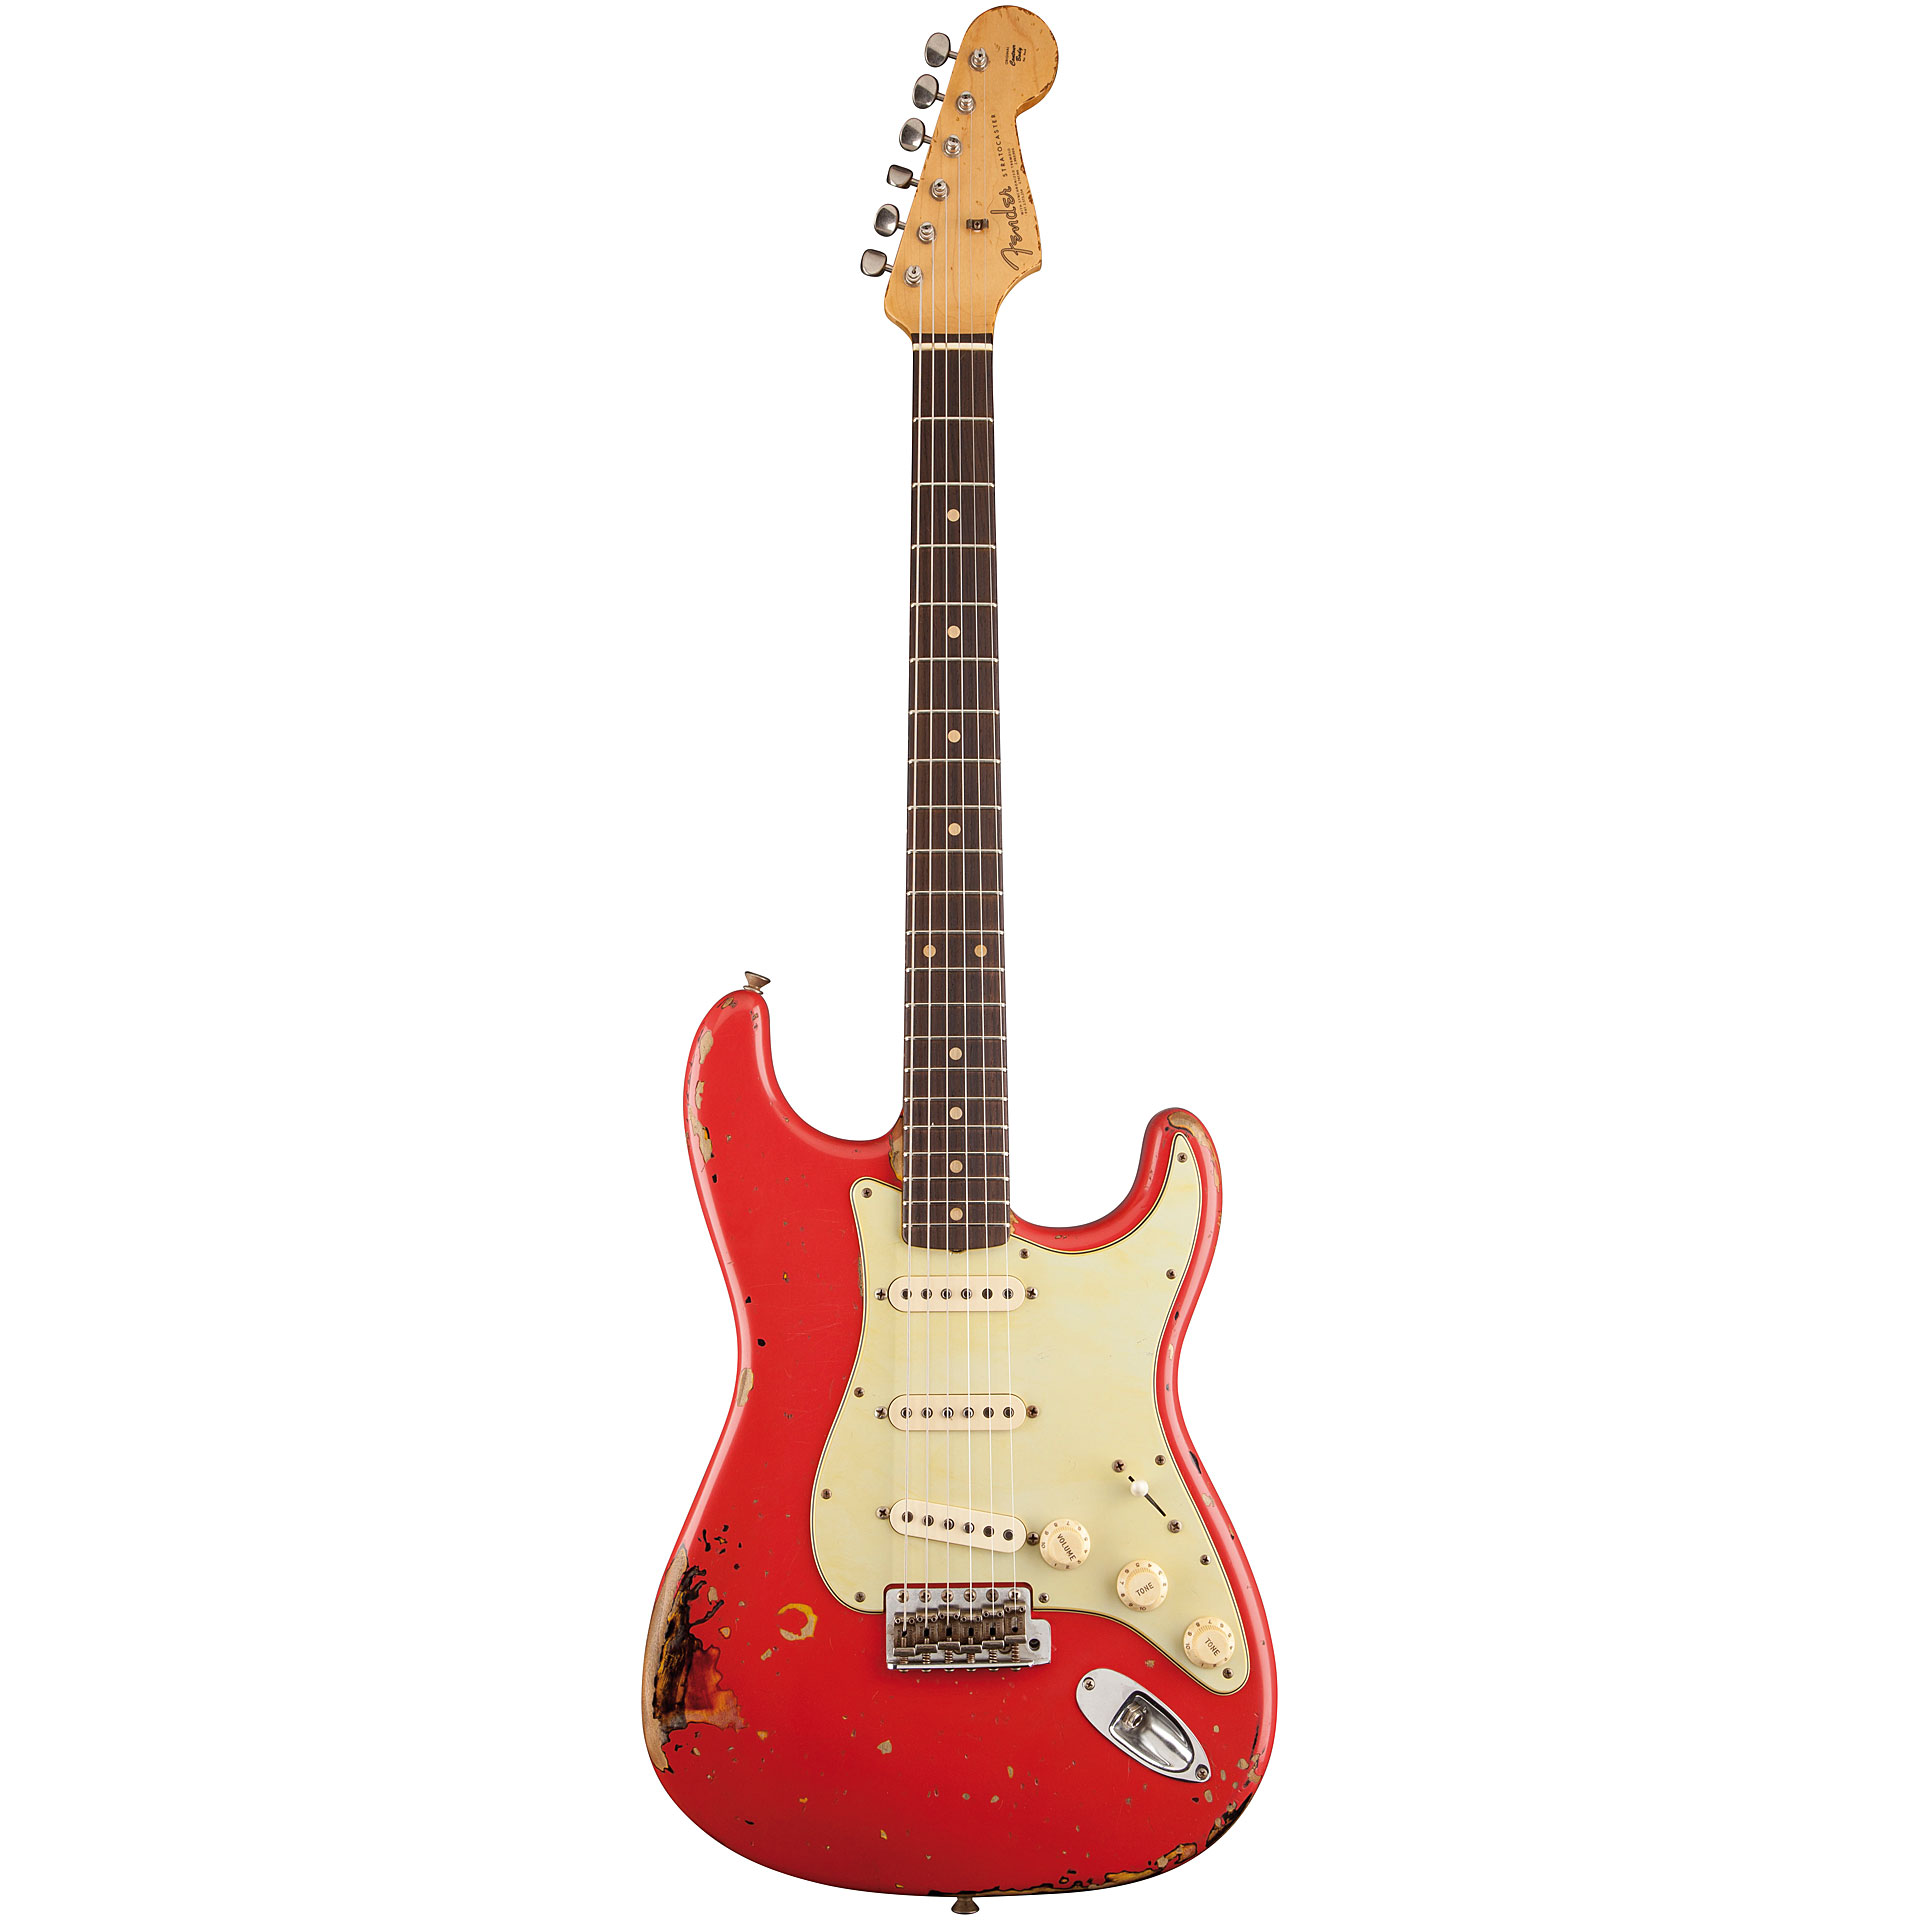 Fender Michael Landau 1963 Relic Stratocaster 10071664 also Camaro Sports Car moreover Automatic Transfer Switch Ats as well Mayones Regius Core Classic 7 Dirty Purple also Jackson Kelly Js32t Sbk. on selector switch